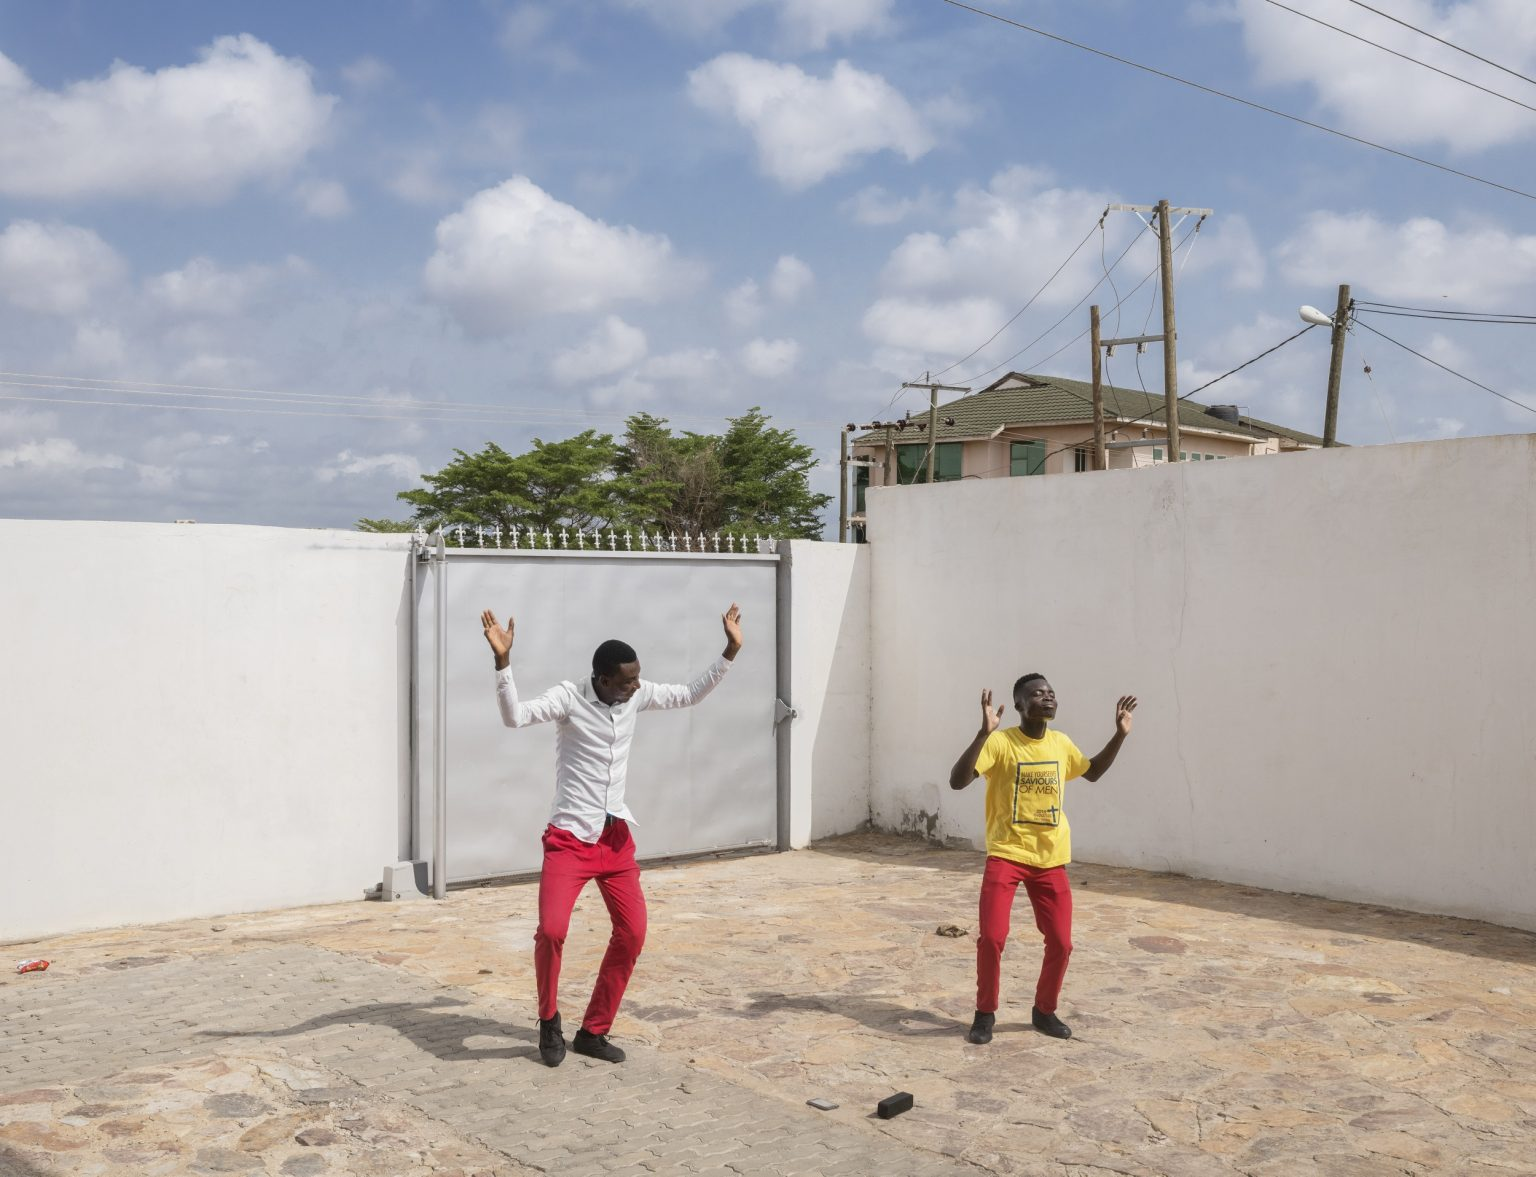 """Legon (Accra), Greater Accra Region, Republic of Ghana, April 2019 - Young worshipers dancing in the courtyard of Qodesh Family Church, The Qedesh, a Lighthouse Chapel International branch located in East Legon Hills and inaugurated in 2017.According to a Pew Research Center's report titled """"The Age Gap inReligionAround the World"""", Georgia and Ghana are the only two countries in the world where young people aged 18-39 are more religious than those aged 40 and above. Lighthouse Chapel International (LCI),  founded in 1988 by Dag Heward-Mills and headquartered in Accra it is considered to be one of the leading charismatic churches in Ghana, and has over 3000 branches in over 50 countries in Africa, Europe, Asia, the Caribbean, Australia, the Middle East and the Americas. Lighthouse Chapel International is one of the largest of the Pentecostal churches that have appeared since the late 1970s in cities in Africa. ><  Legon (Accra), Grande Regione di Accra, Repubblica del Ghana, aprile 2019 - Giovani fedeli danzano nel cortile della Qodesh Family Church, The Qedesh, sede della Lighthouse Chapel International situata a East Legon Hills ed inaugurata nel 2017.Secondo un rapporto del Pew Research Center intitolato """"The Age Gap in Religion Around the World"""", Georgia e Ghana sono gli unici due paesi al mondo in cui i giovani tra i 18 ei 39 anni sono più religiosi di quelli di 40 anni e oltre. Lighthouse Chapel International (LCI), fondata nel 1988 da Dag Heward-Mills e con sede ad Accra, è considerata una delle principali chiese carismatiche del Ghana e conta oltre 3000 filiali in oltre 50 paesi in Africa, Europa, Asia, i Caraibi, l'Australia, il Medio Oriente e le Americhe. Lighthouse Chapel International è una delle più grandi chiese pentecostali apparse dalla fine degli anni '70 nelle città dell'Africa."""